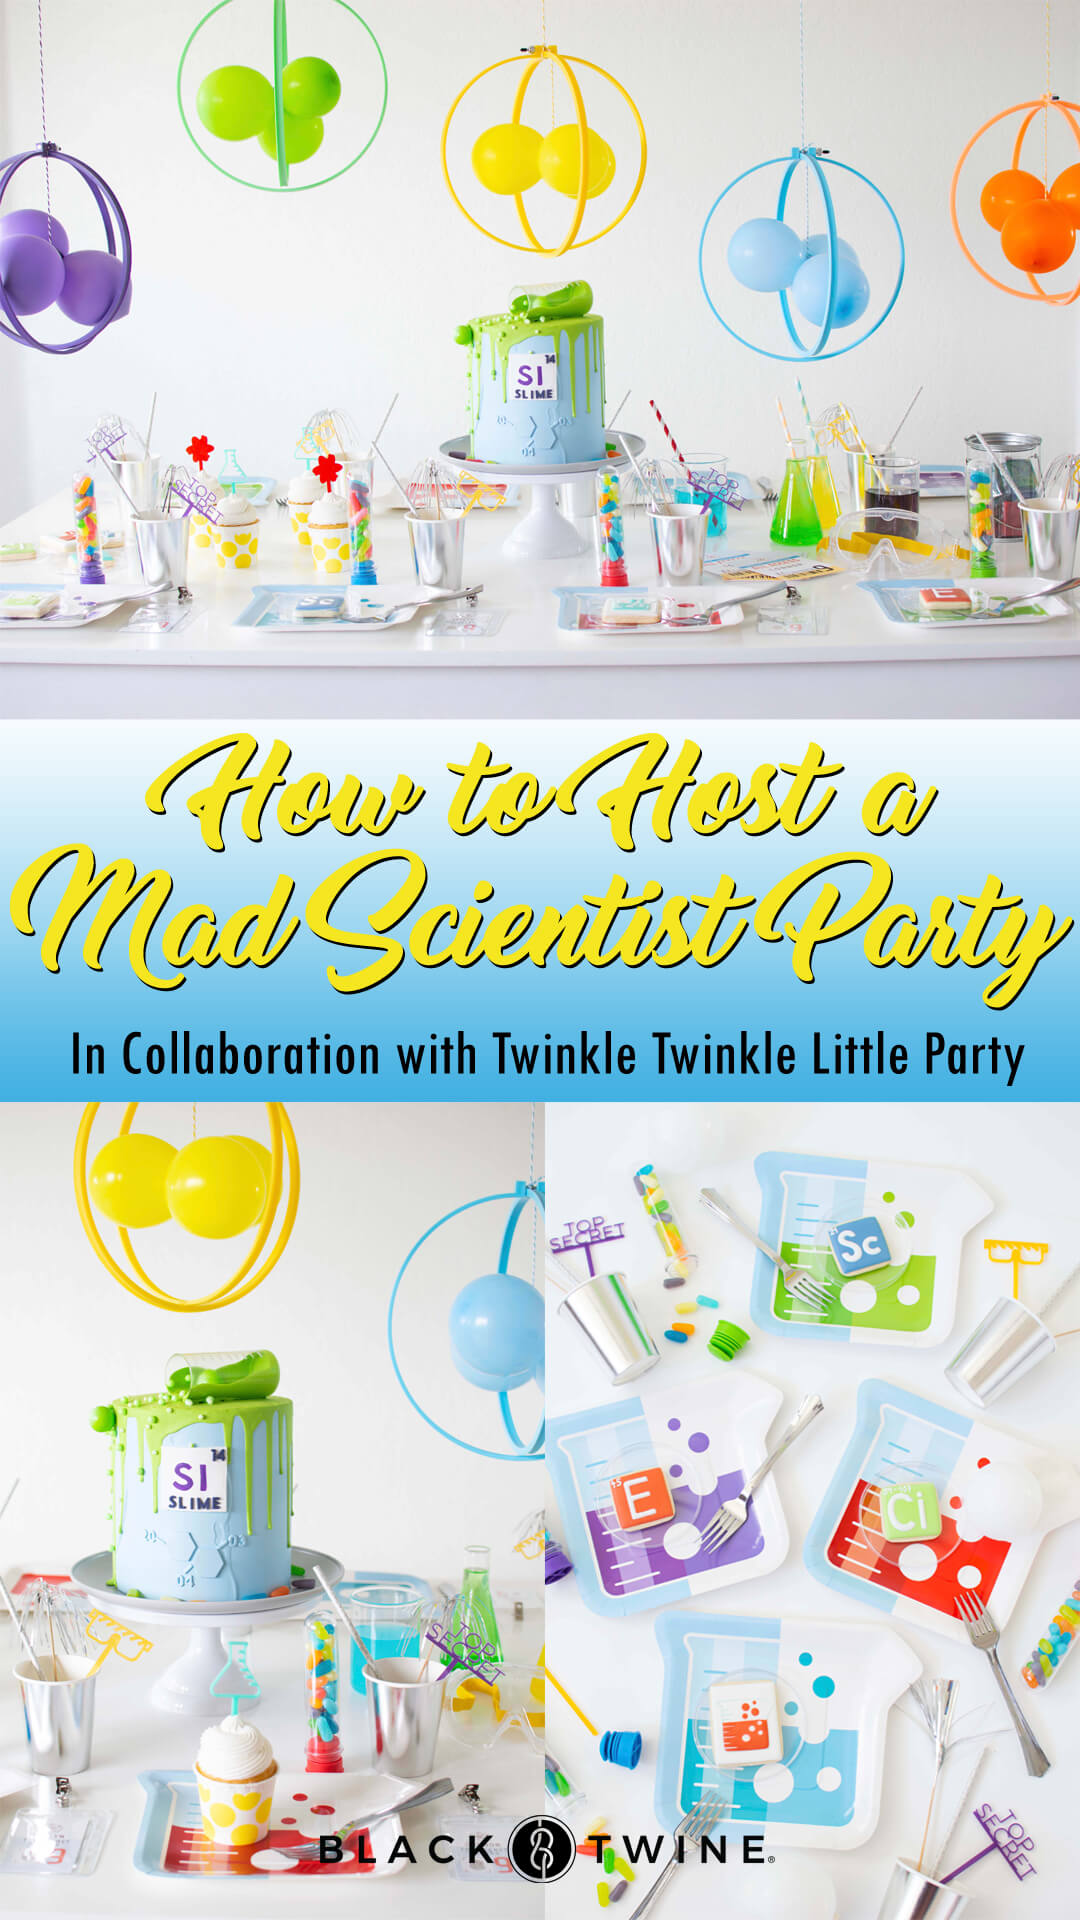 Collage Photo from Mad Scientist Party In Collaboration with Twinkle Twinkle Little Party | Black Twine